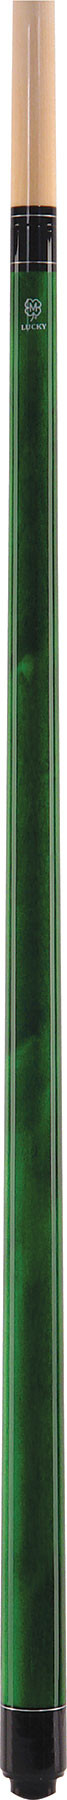 McDermott Lucky Pool Cue, L3, Green